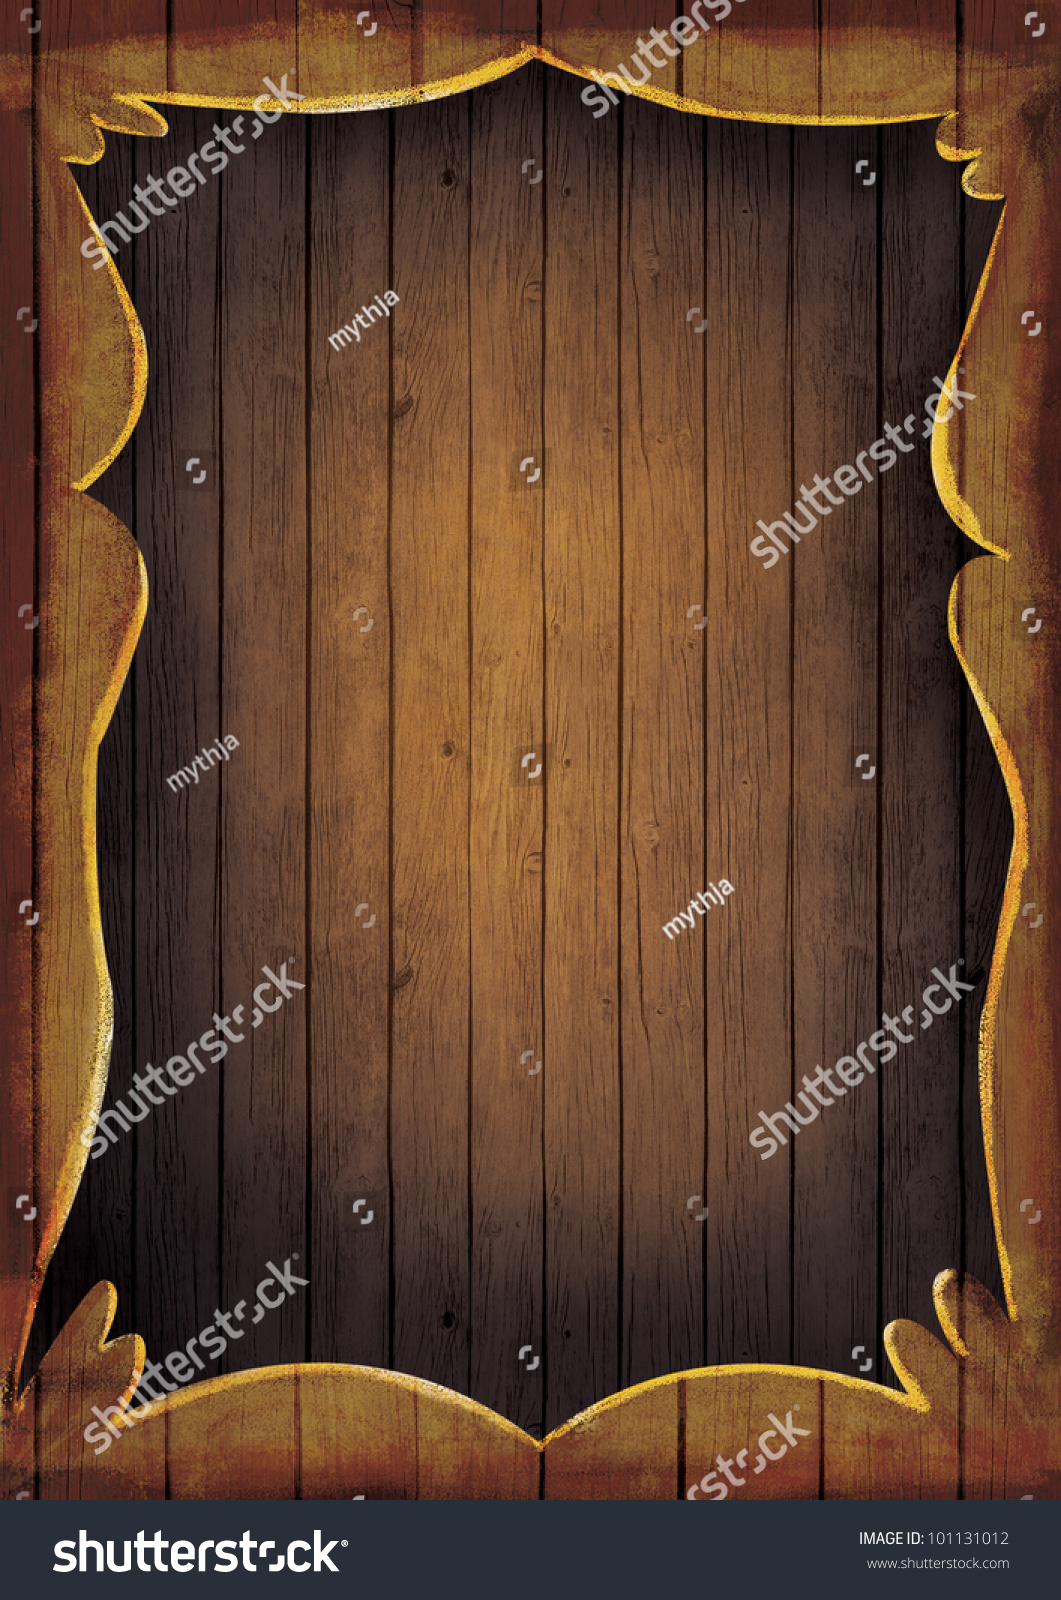 Wooden Frame Illustration Artistic Hand Painted Stock Photo (Royalty ...